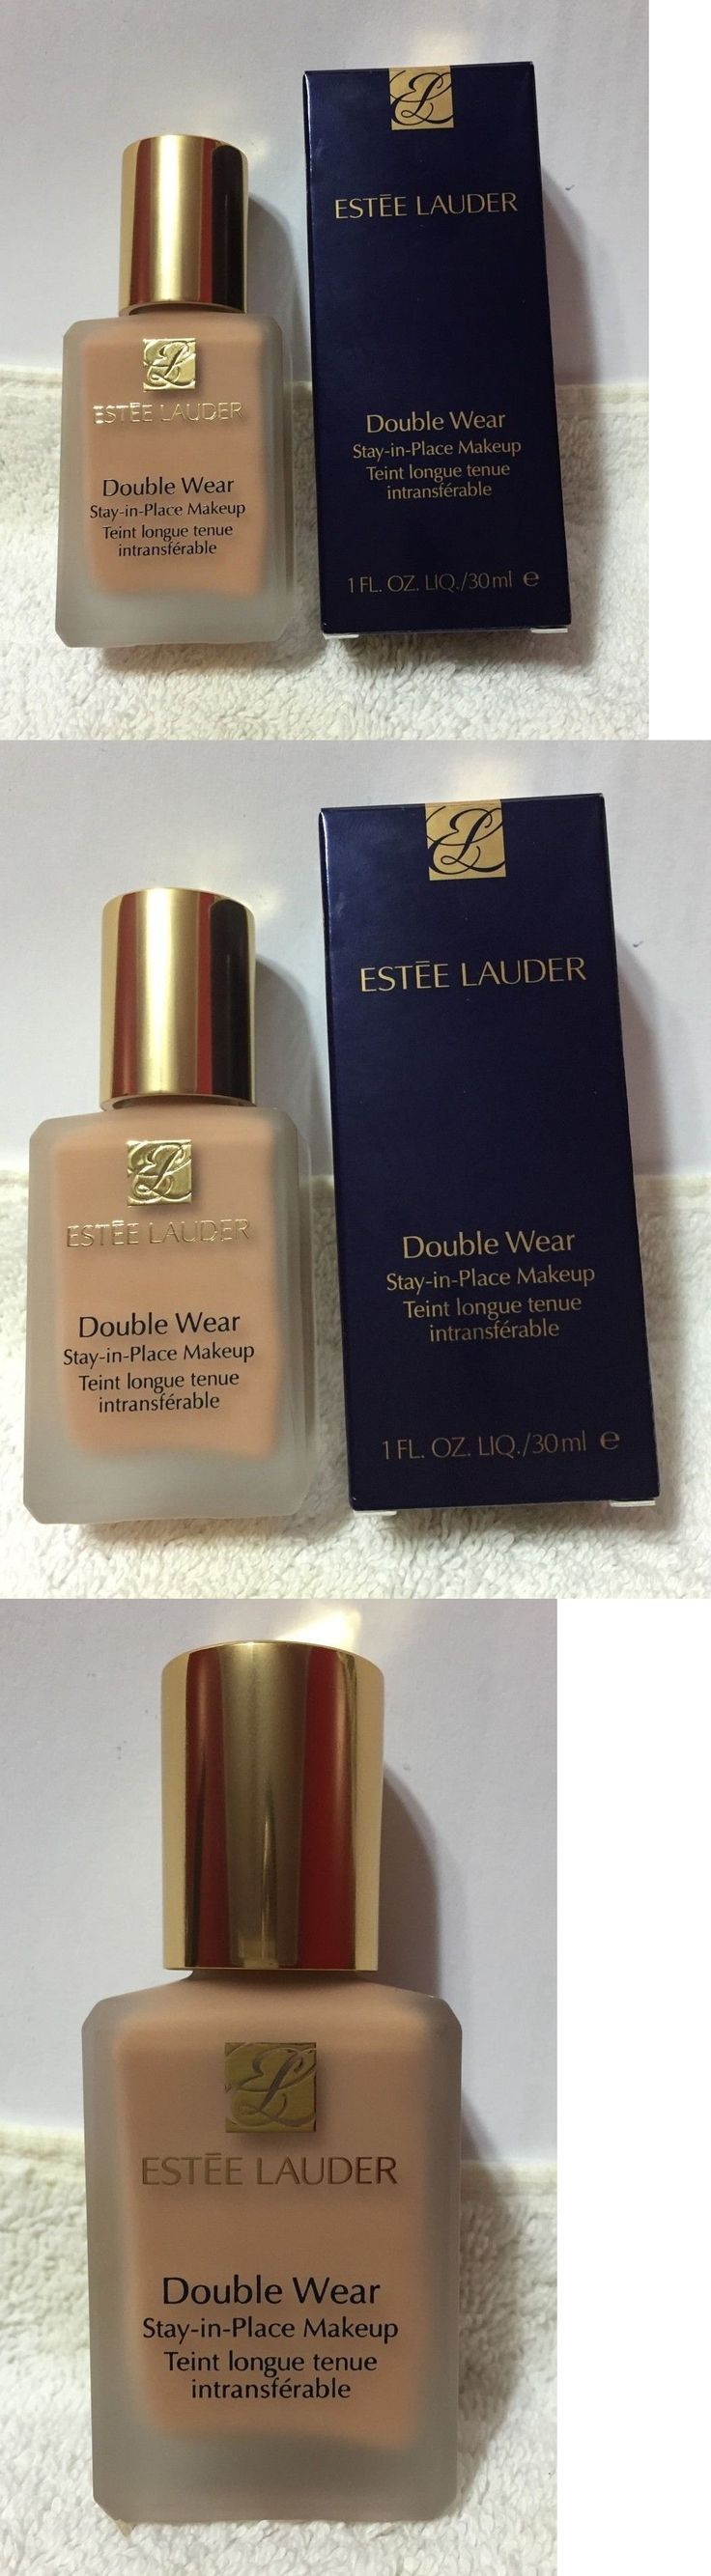 Concealer: New In Box - Estee Lauder Double Wear Makeup - 3N2 Wheat - Full Sz - 1 Oz -> BUY IT NOW ONLY: $34.95 on eBay!